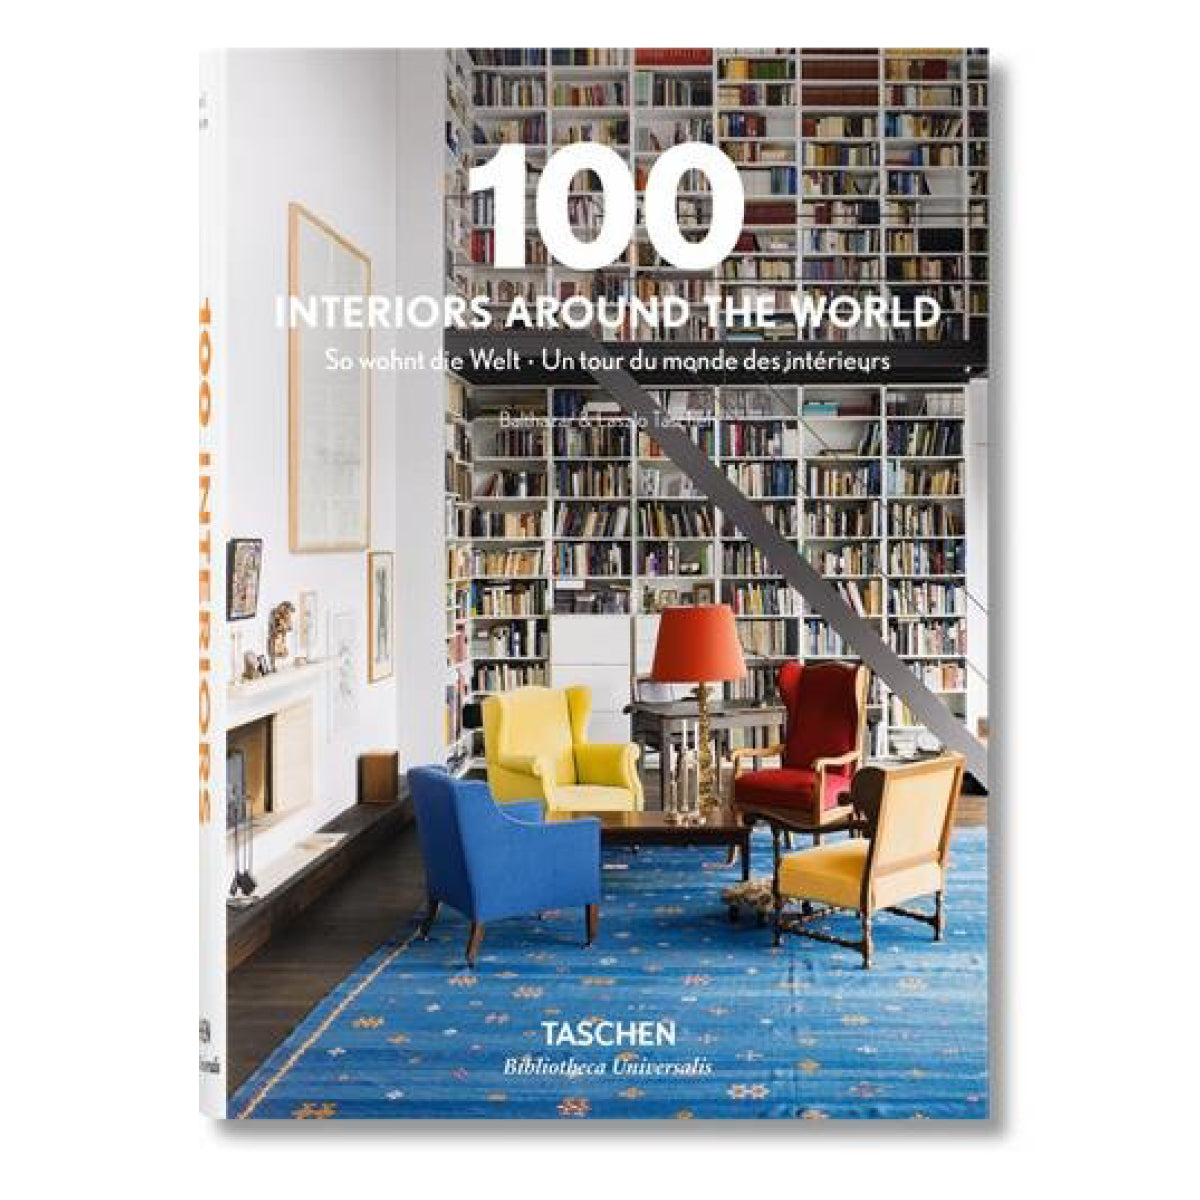 100 Interiors Around the World (Single Version) by Meike Niessen & Jutta Hendricks